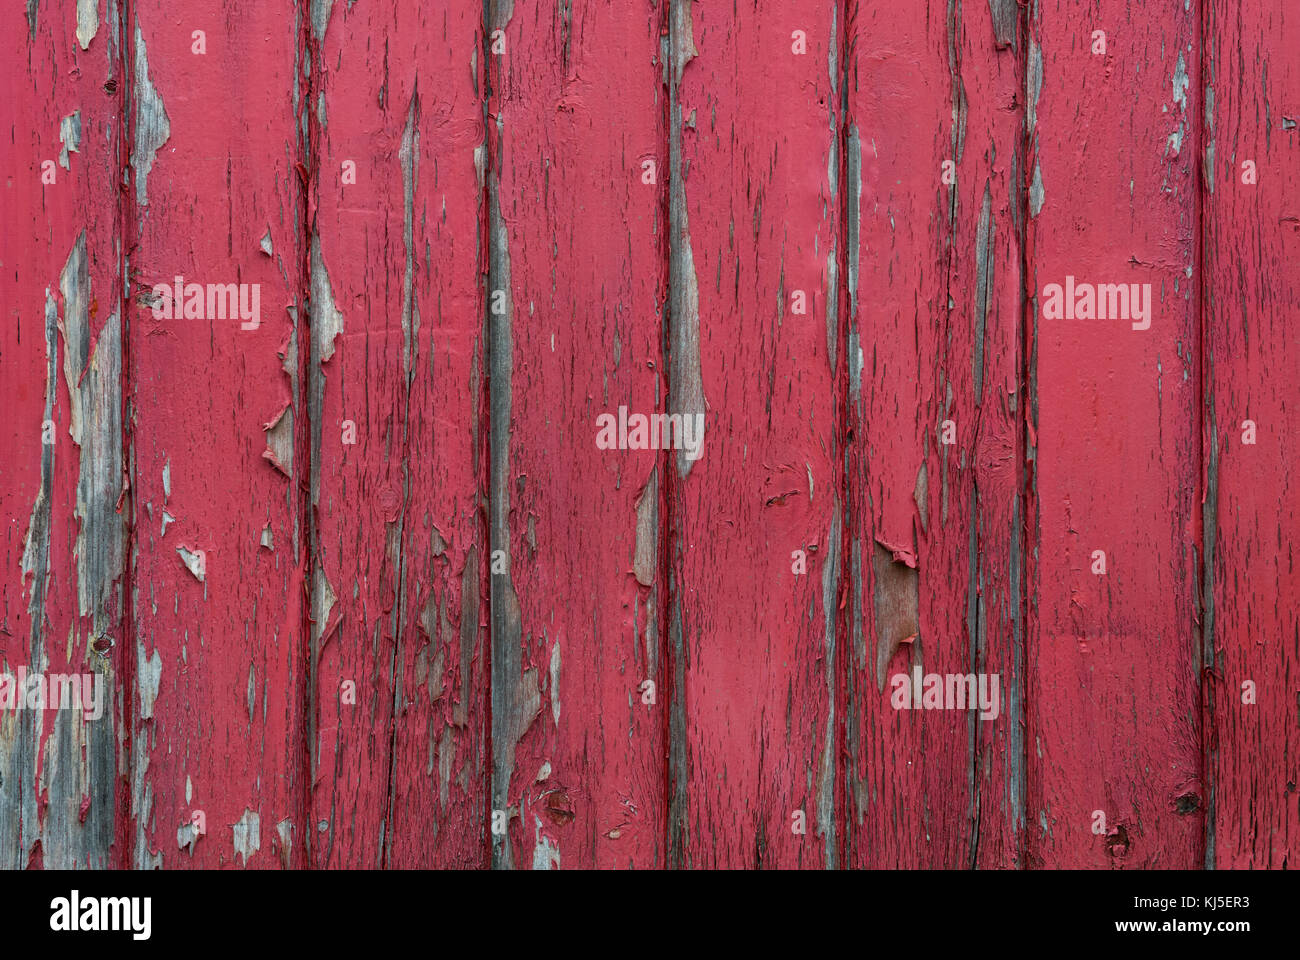 Red Paint Peels Off Wood Slat Wall Background Image - Stock Image